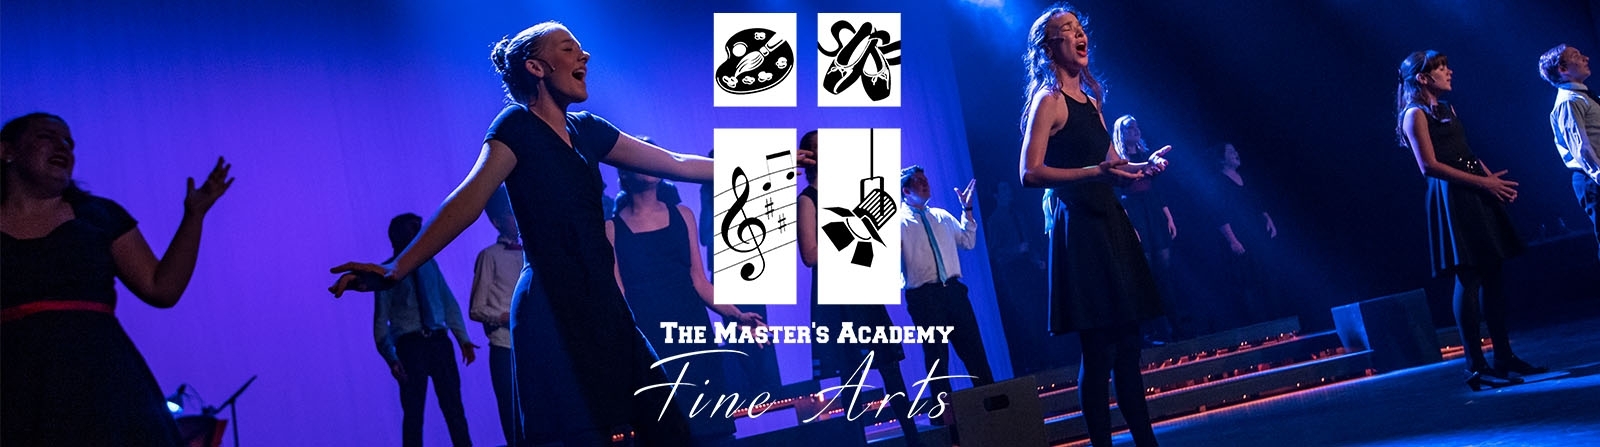 The Master's Academy Fine Arts